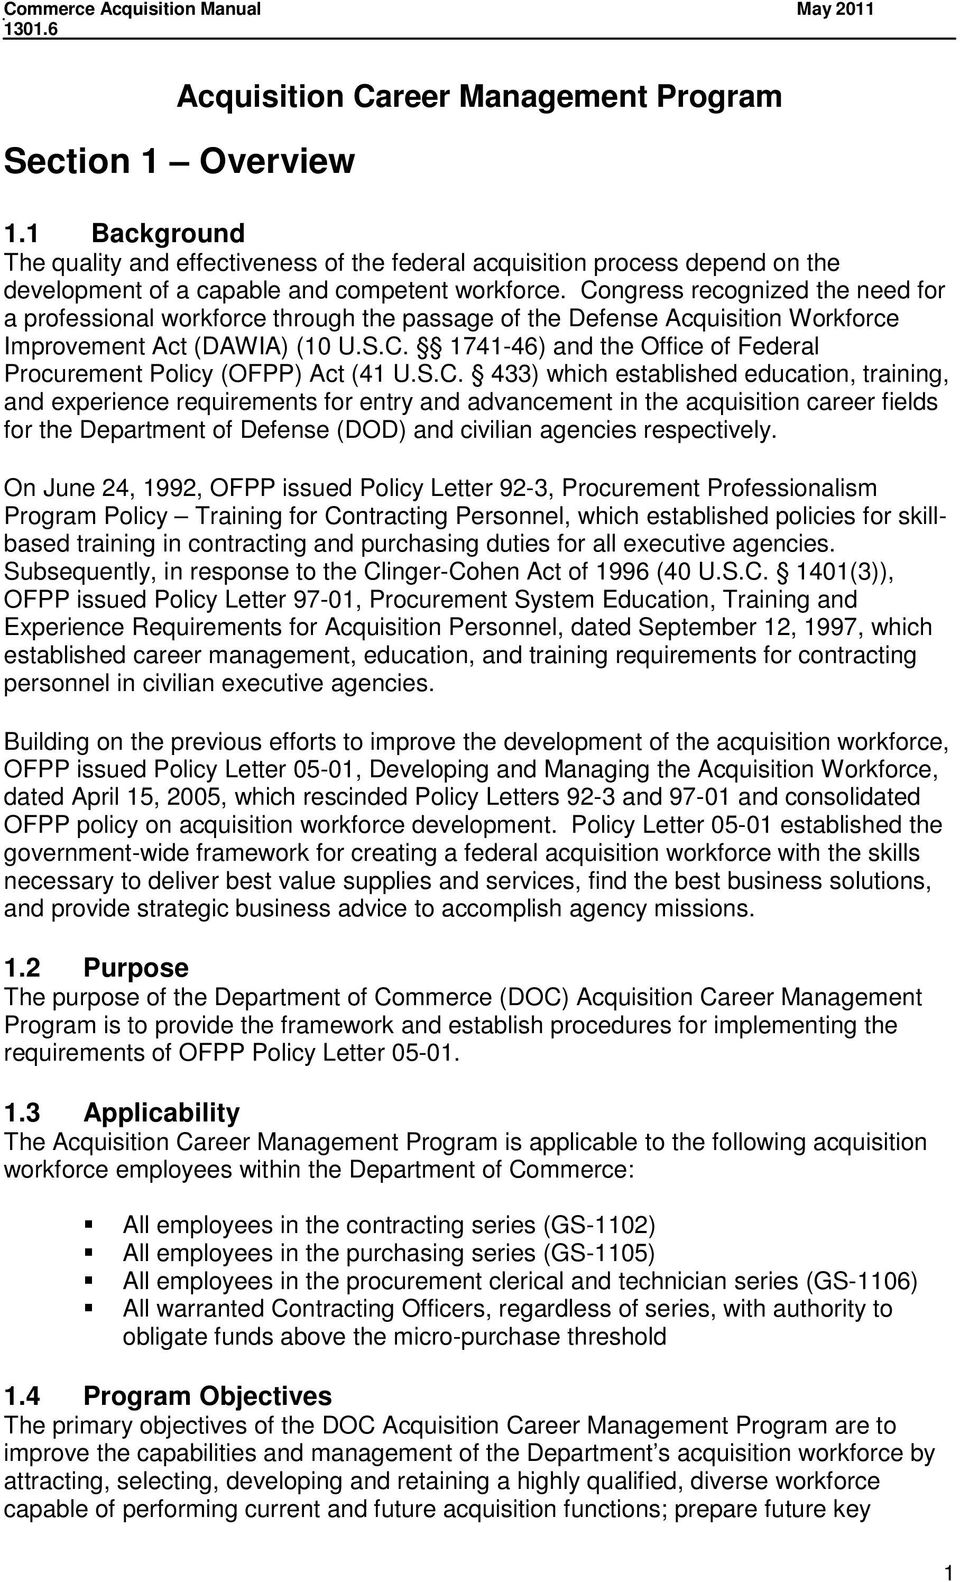 S.C. 433) which established education, training, and experience requirements for entry and advancement in the acquisition career fields for the Department of Defense (DOD) and civilian agencies